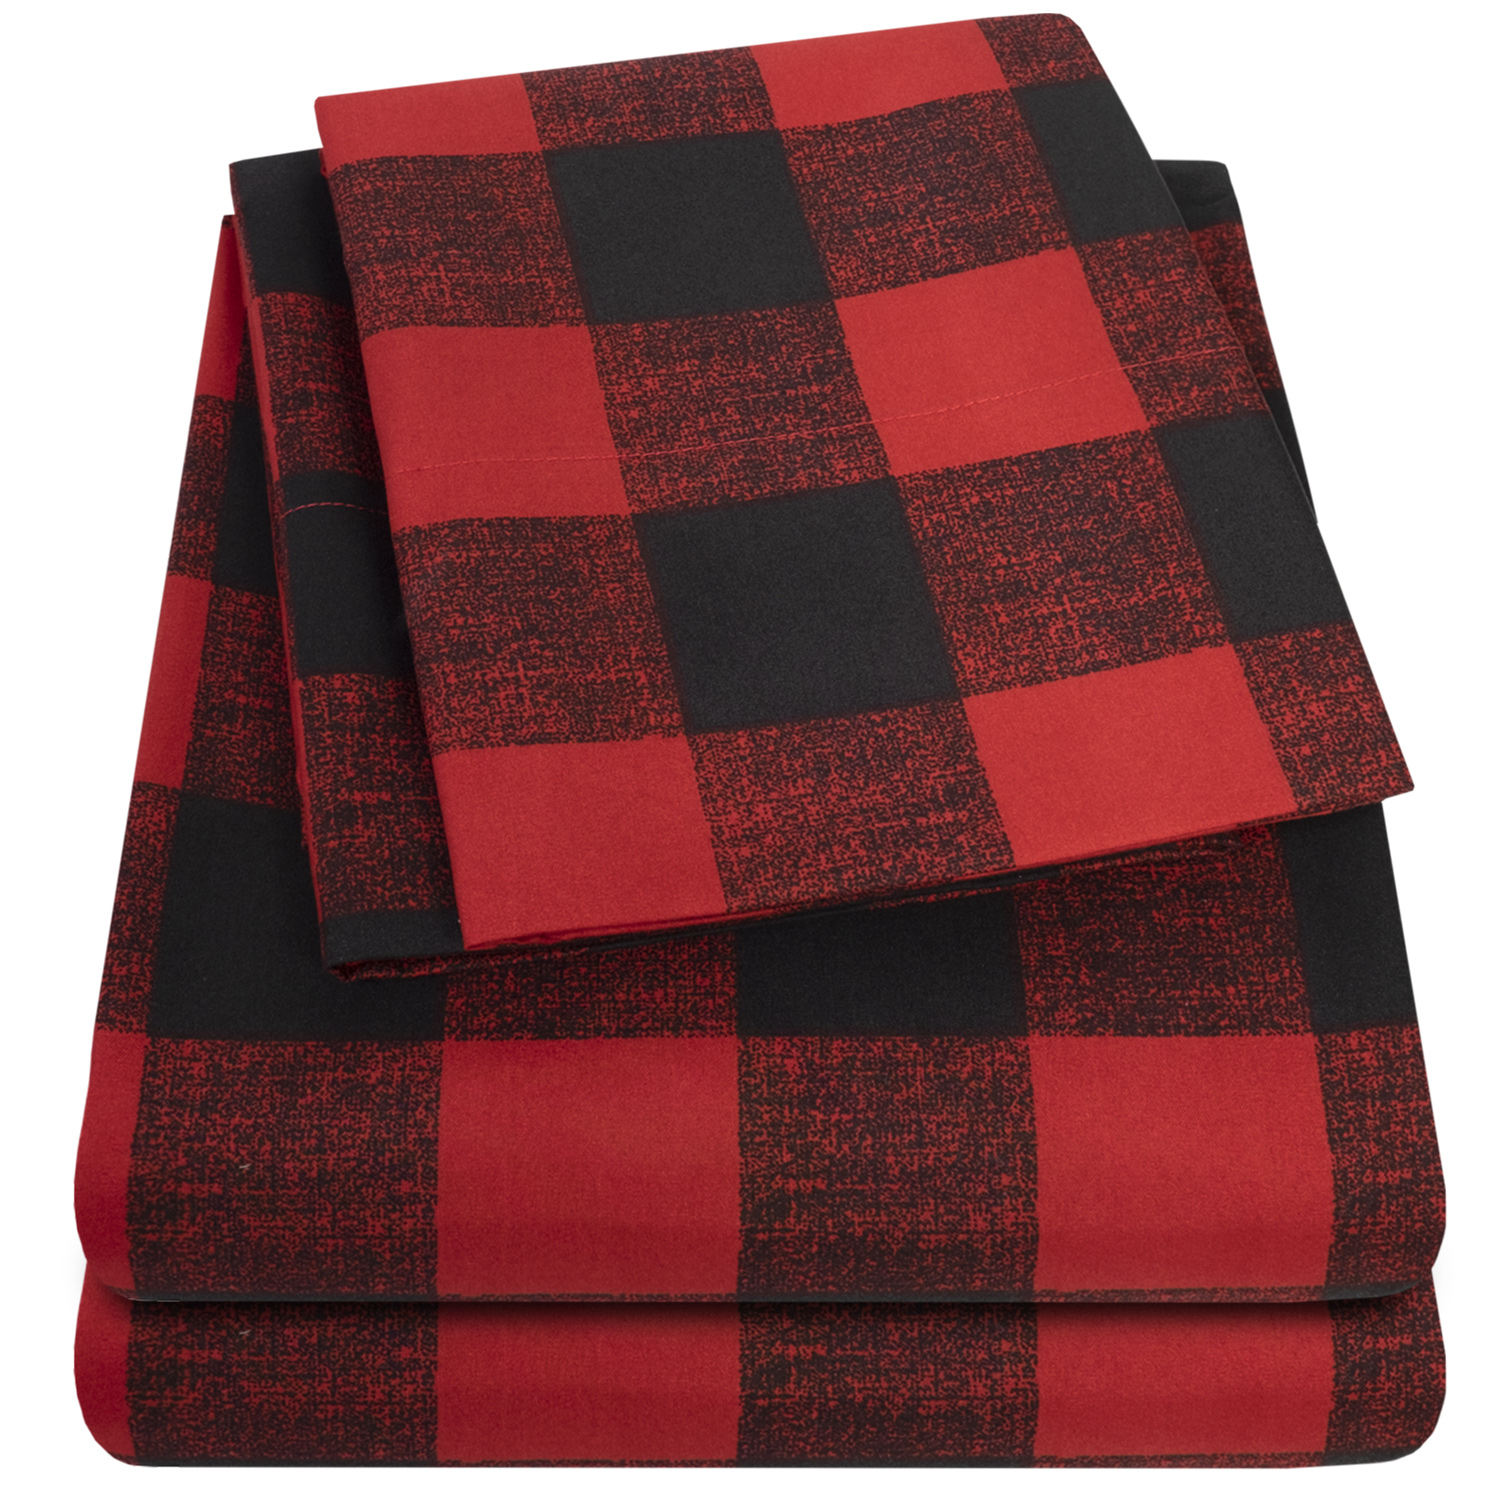 Red Buffalo Plaid Sheet set